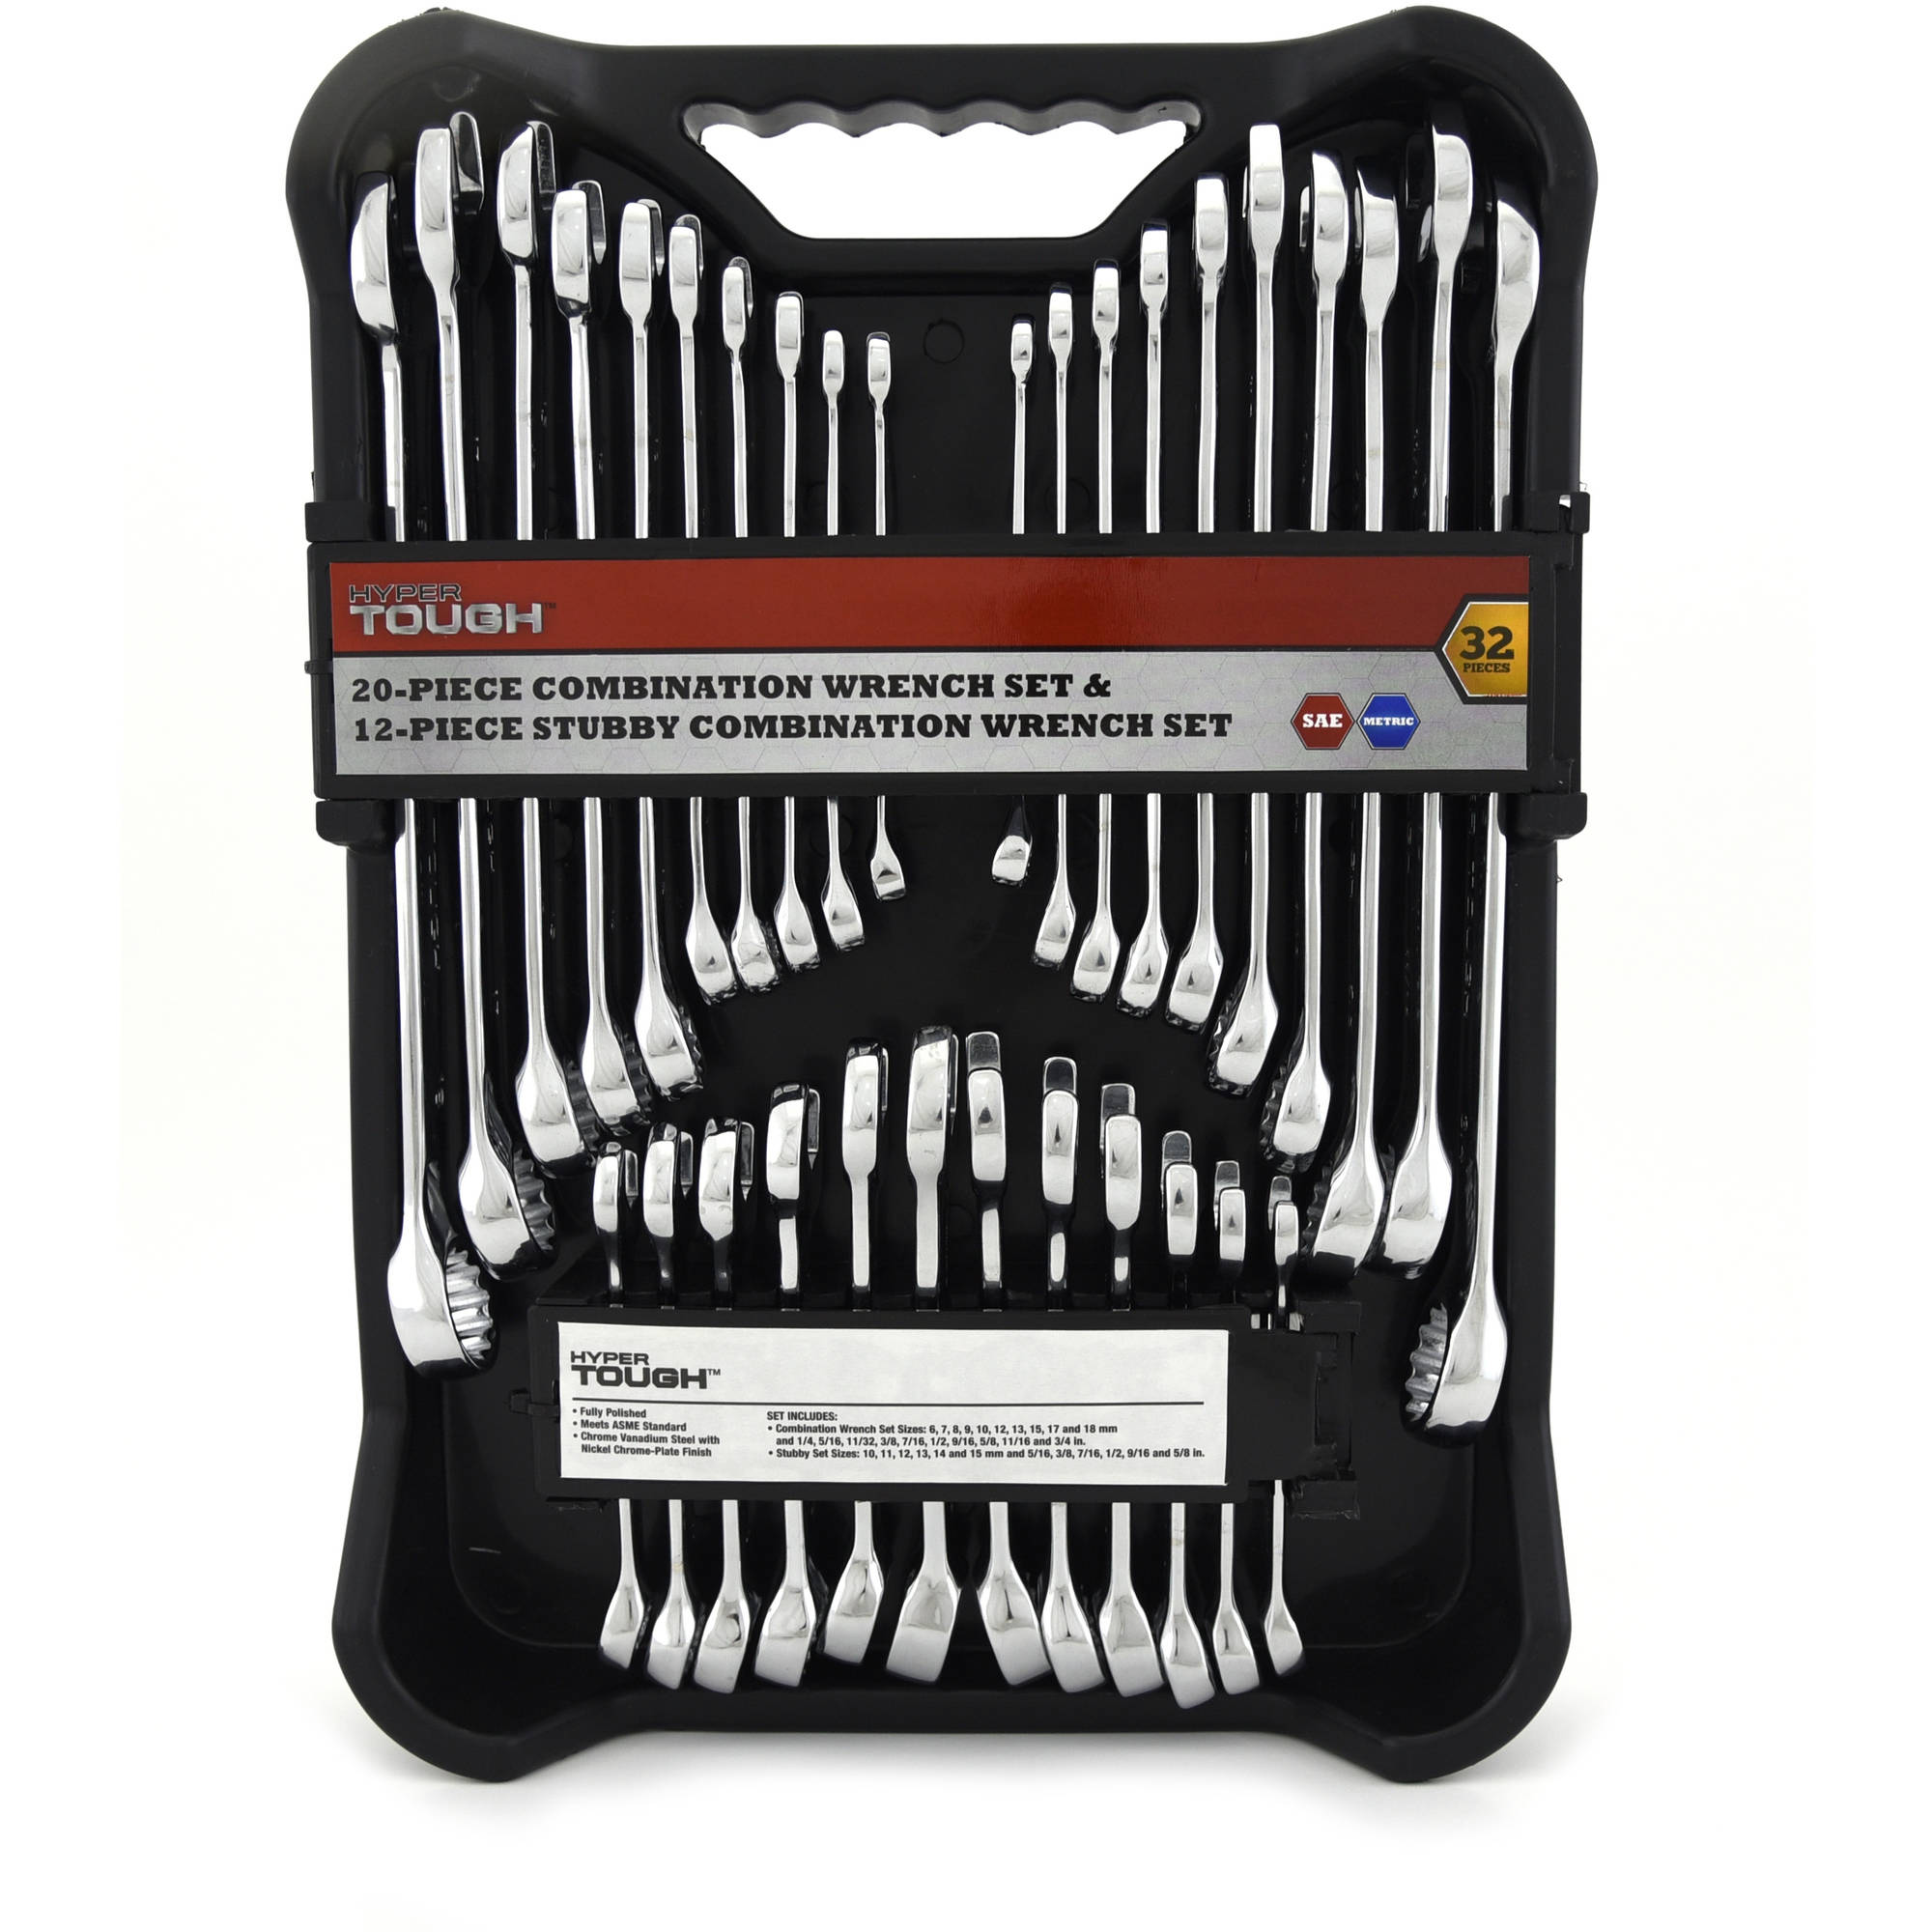 Hyper Tough 32-Piece Combination Wrench Set